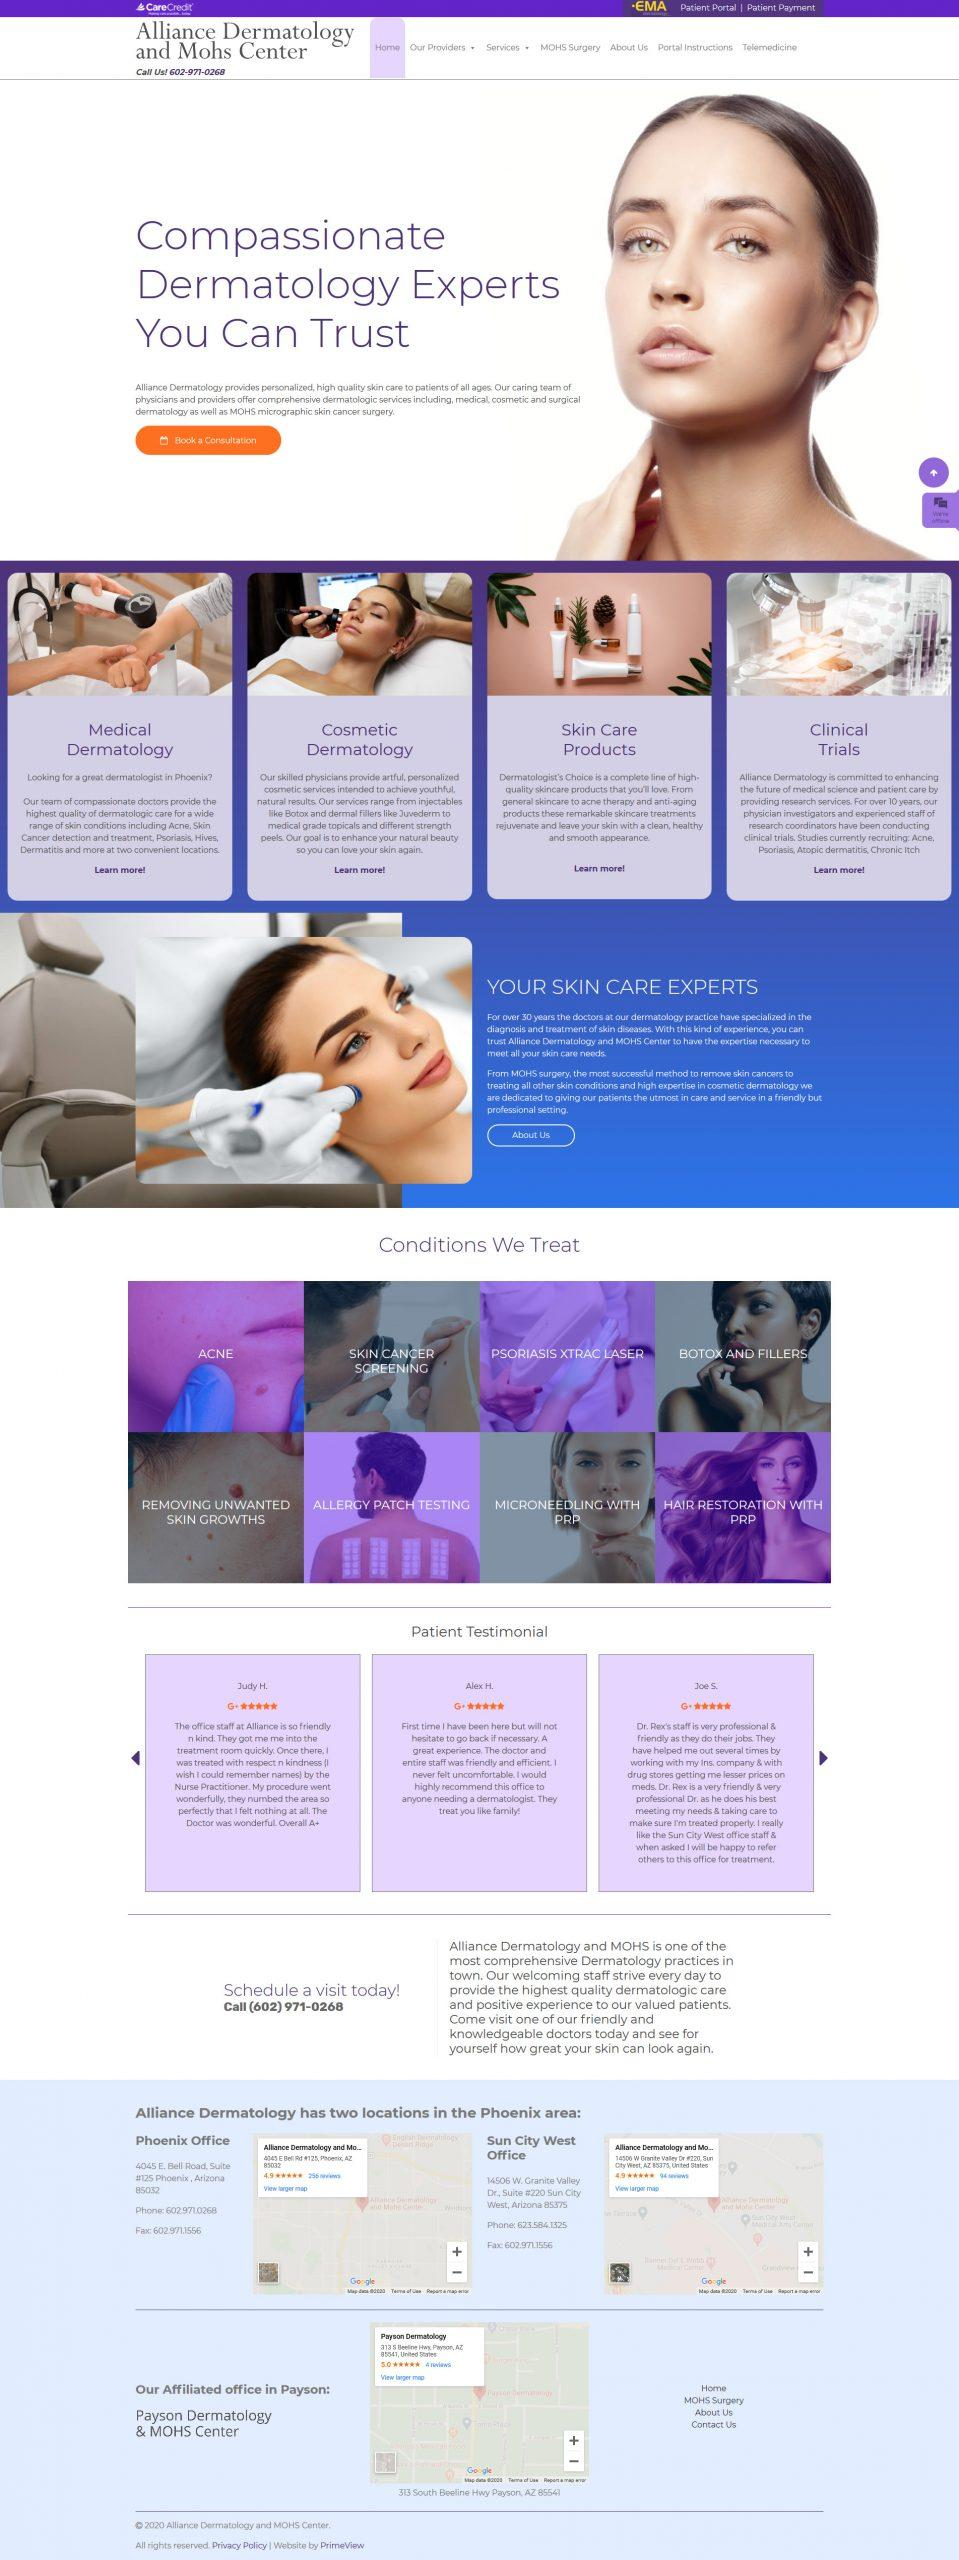 Alliance Dermatology & Mohs Center Gets New Skin With a Website Redesign